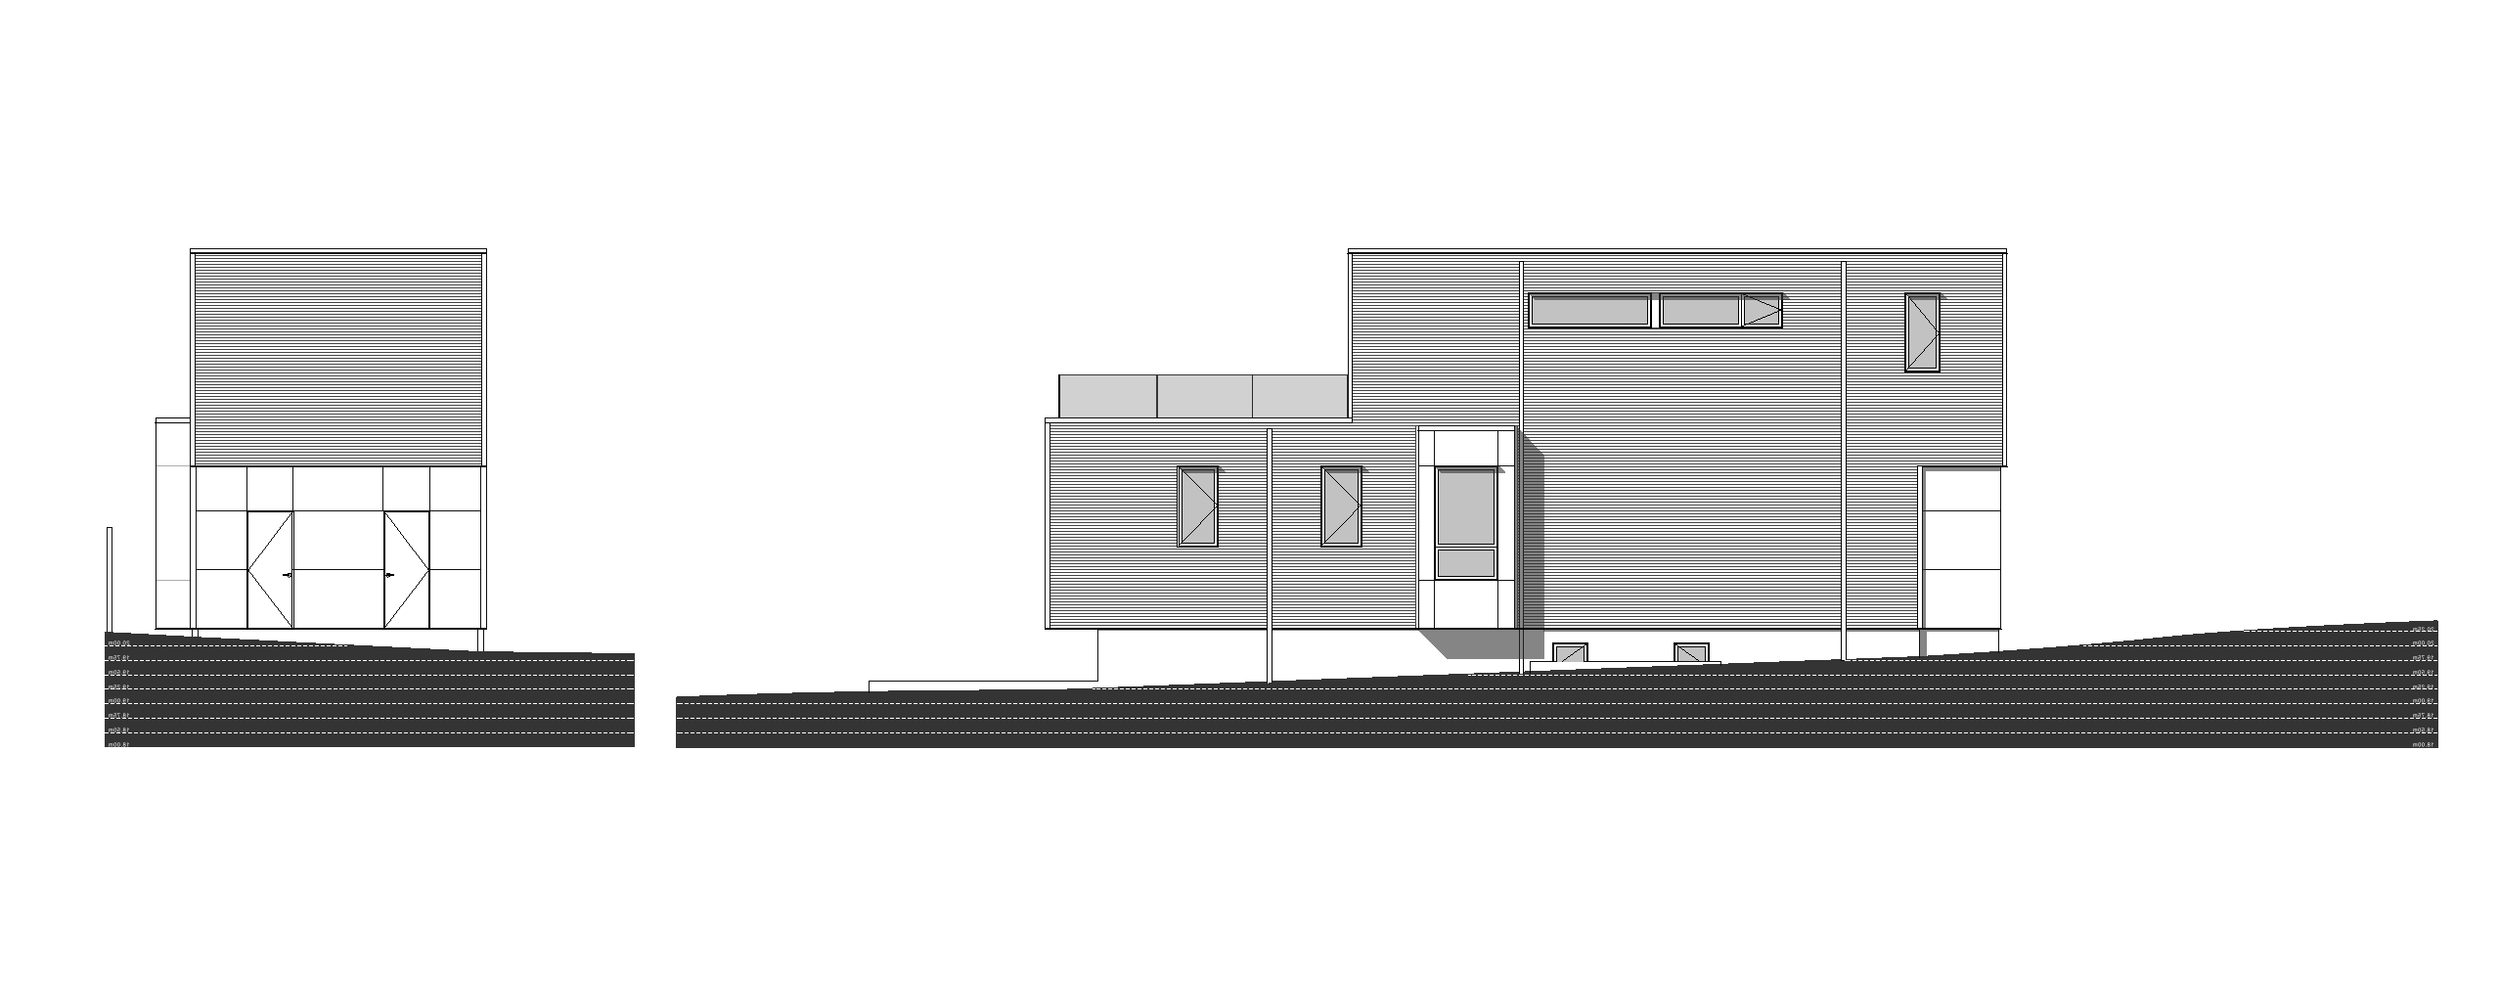 Rear and Side Elevation of Sturdee Street Duplex - a Modern duplex designed and built in Saxe Point, Victoria BC